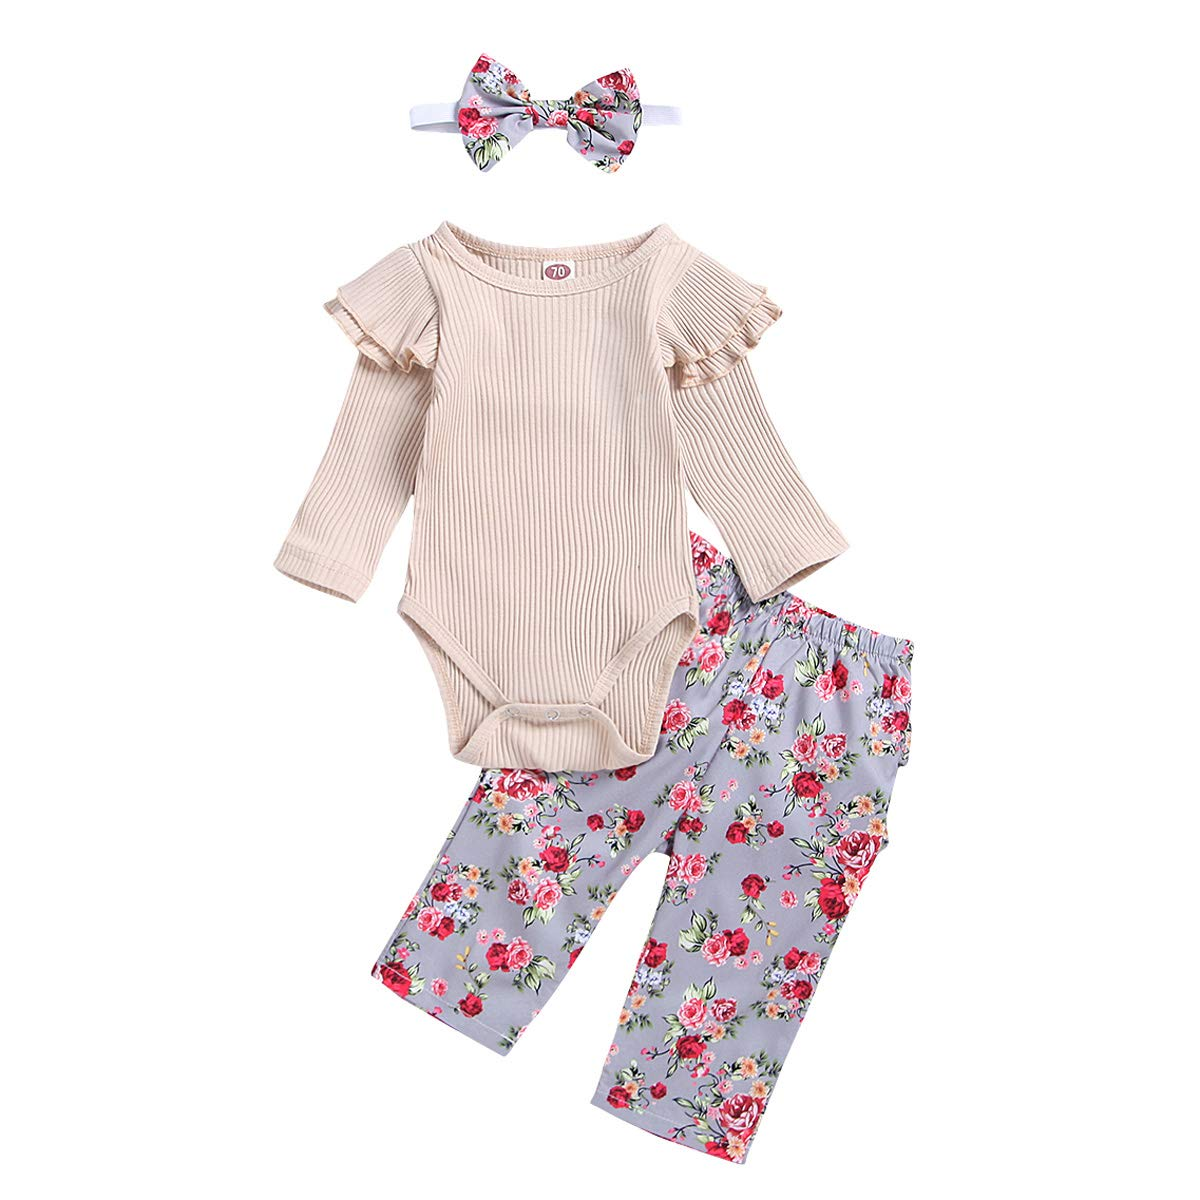 Newborn Infant Toddler Baby Girl Clothes Ruffle Romper Bodysuit Floral Pants Headband Outfits